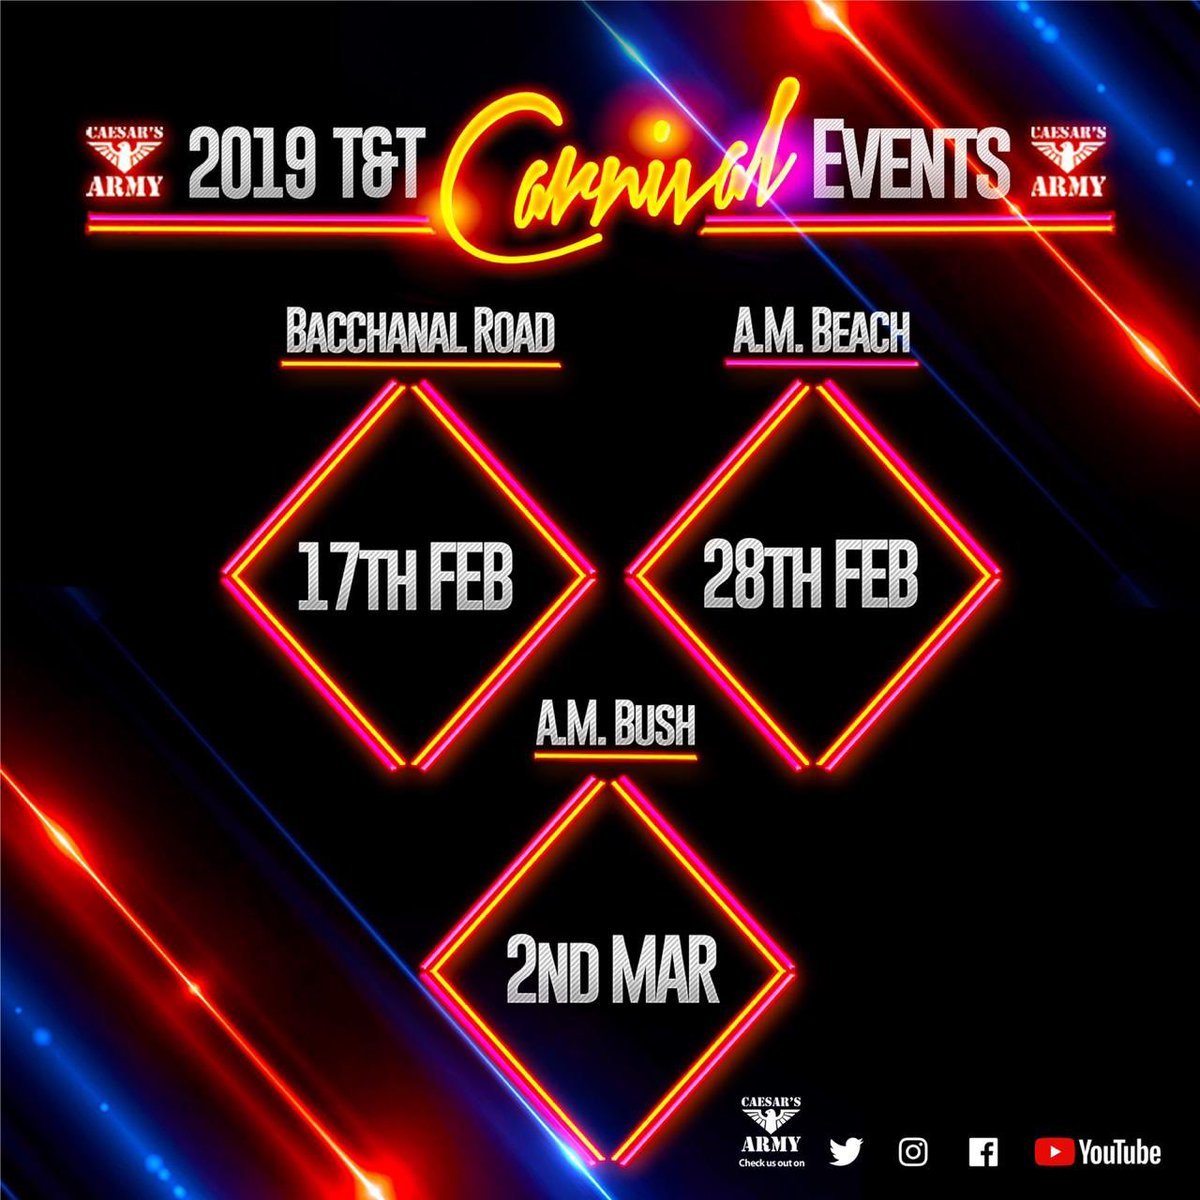 = @caesarsarmy 2019 Carnival   BACCHANAL ROAD TT Conquer The Road Sunday 17th February 2PM TO 8PM  A.M.BEACH Your All Inclusive Beach Experience Thursday 28th February 3AM TO 9AM  A.M.BUSH TT Armageddon Saturday 2nd March 2AM TO 8AM <br>http://pic.twitter.com/8cwBKeAWMg